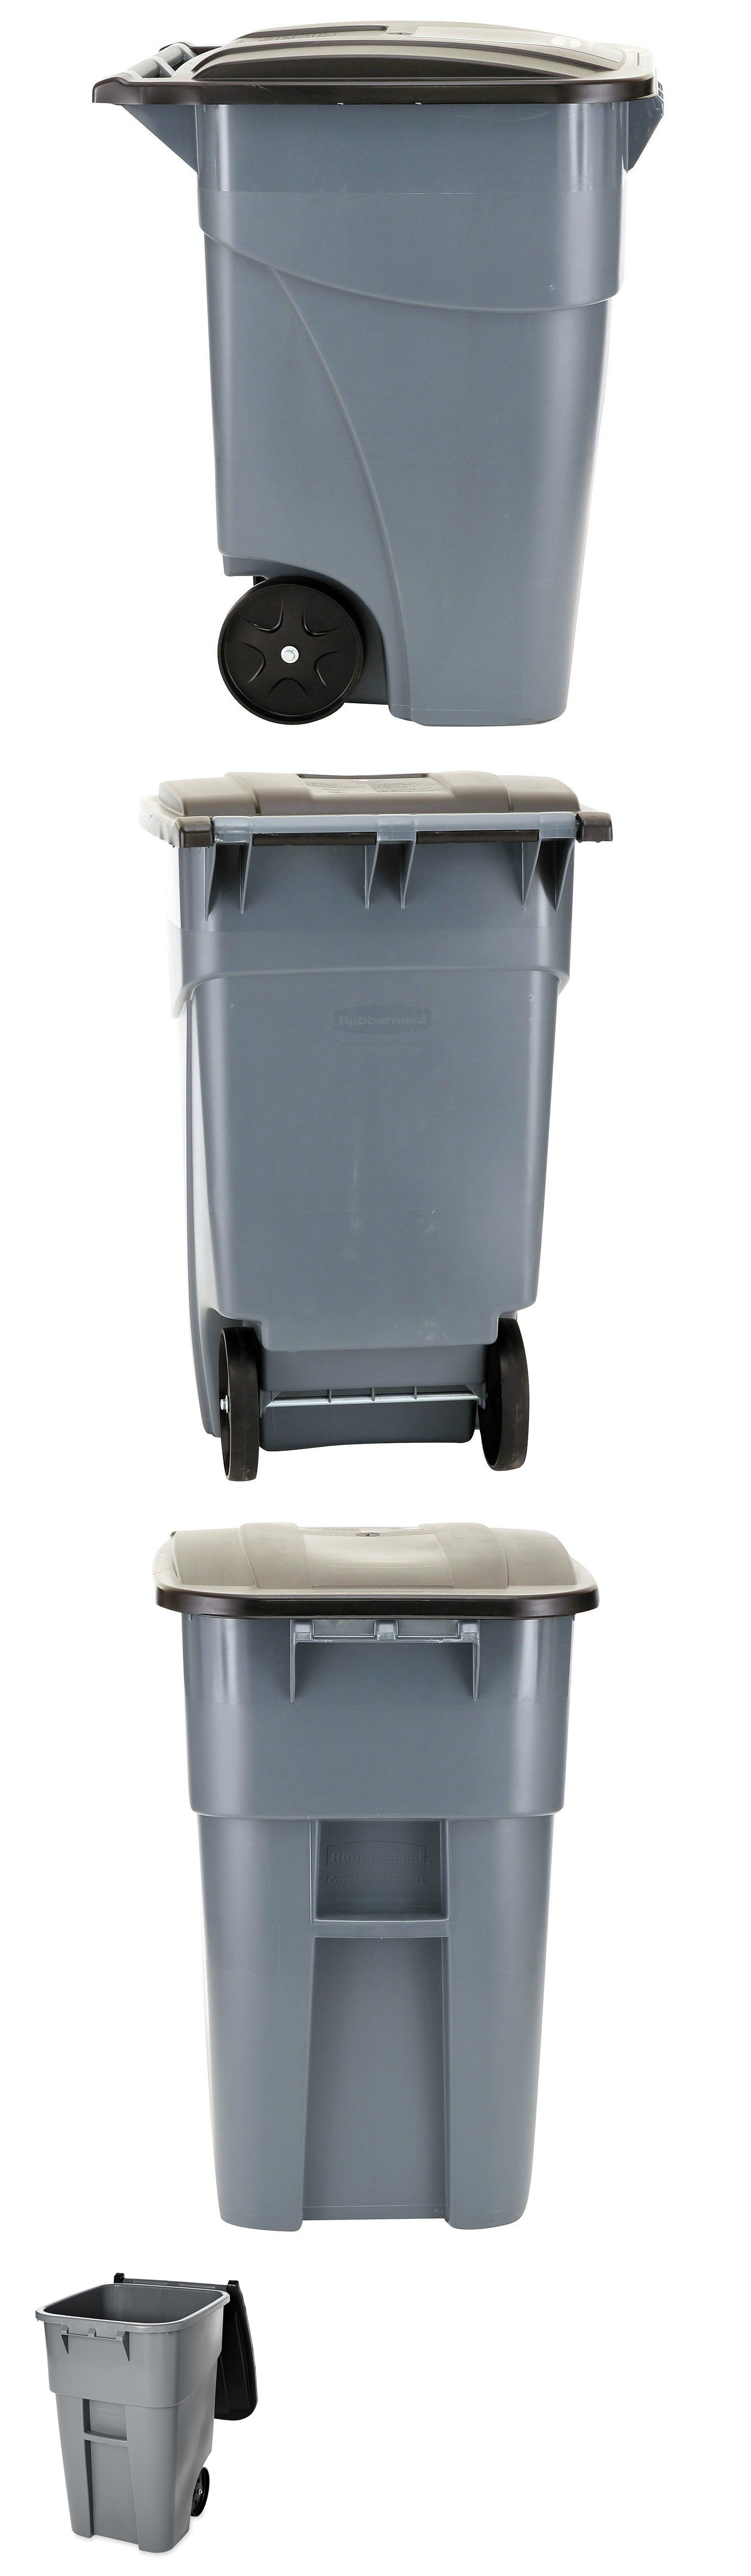 trash cans and wastebaskets 20608 large trash garbage can commercial outdoor container rubbermaid plastic 50 - Commercial Garbage Cans